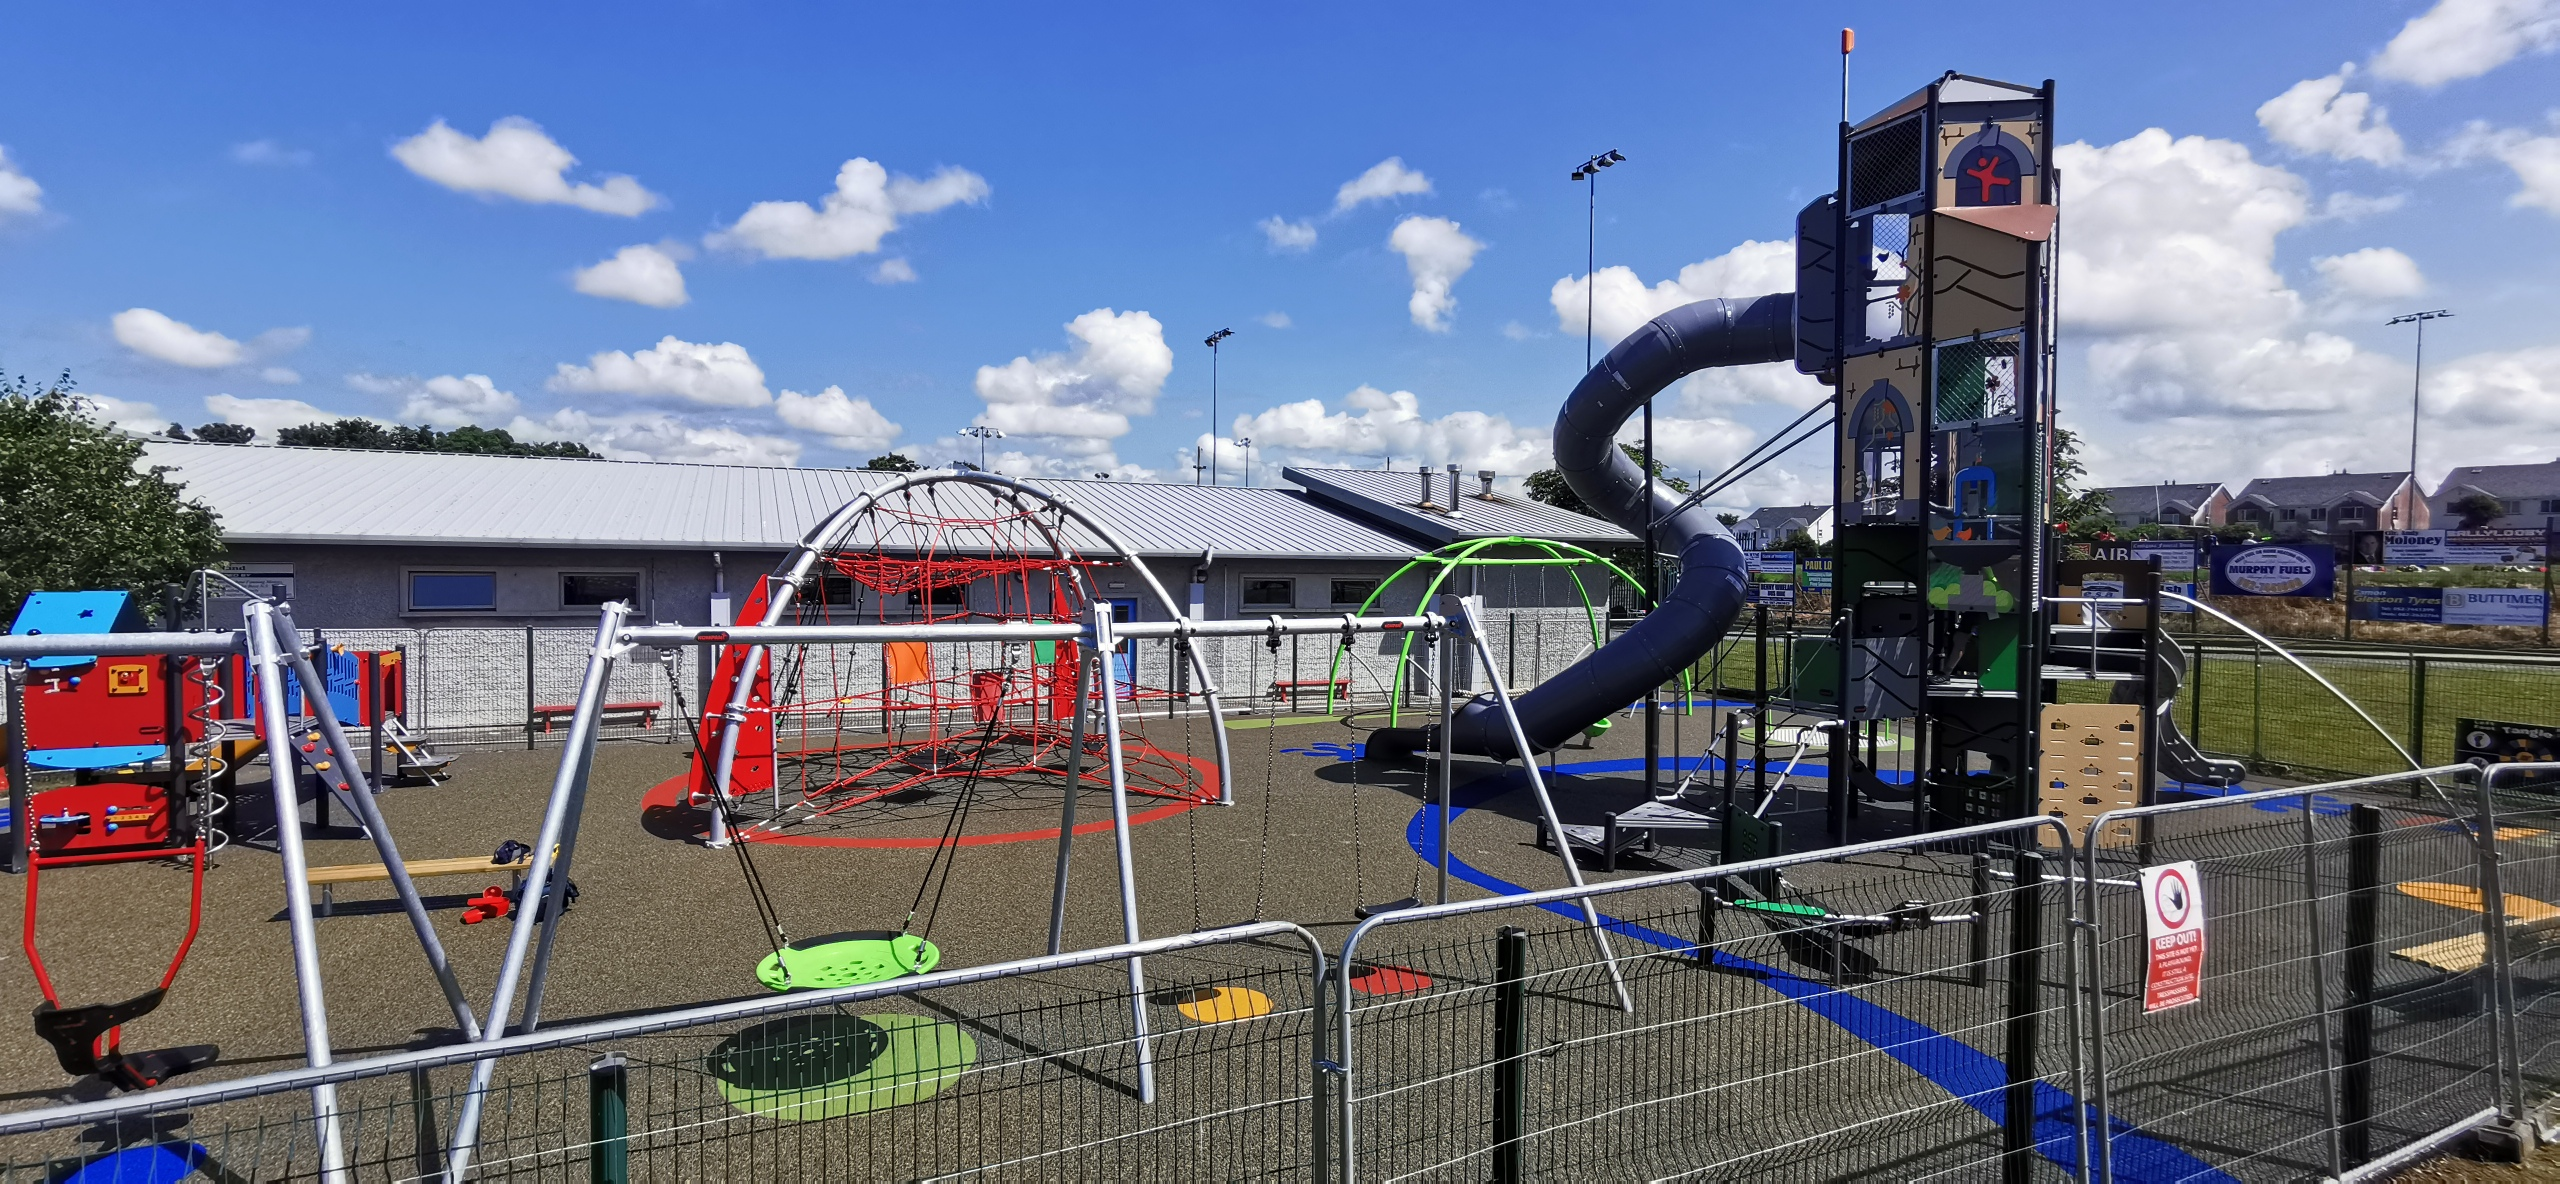 Visit our Giant in Cahir Playground, Tipperary